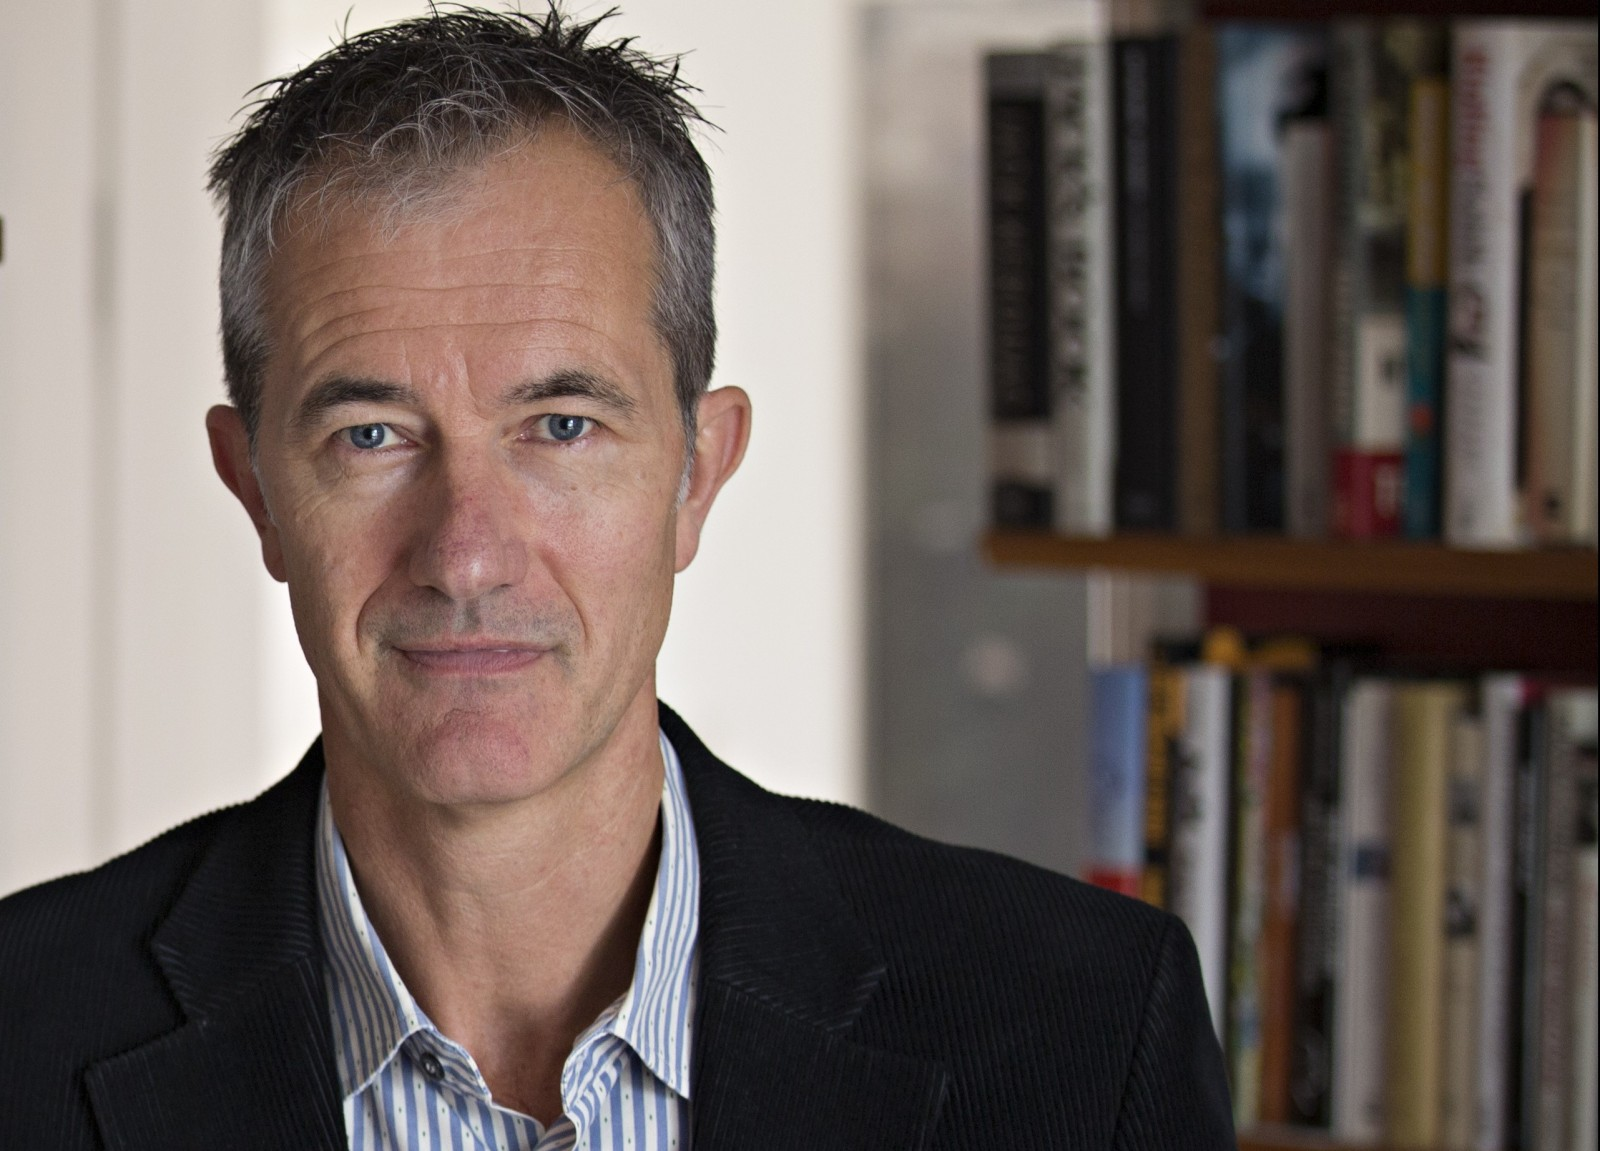 Author Geoff Dyer will be at Hallwalls on April 28.